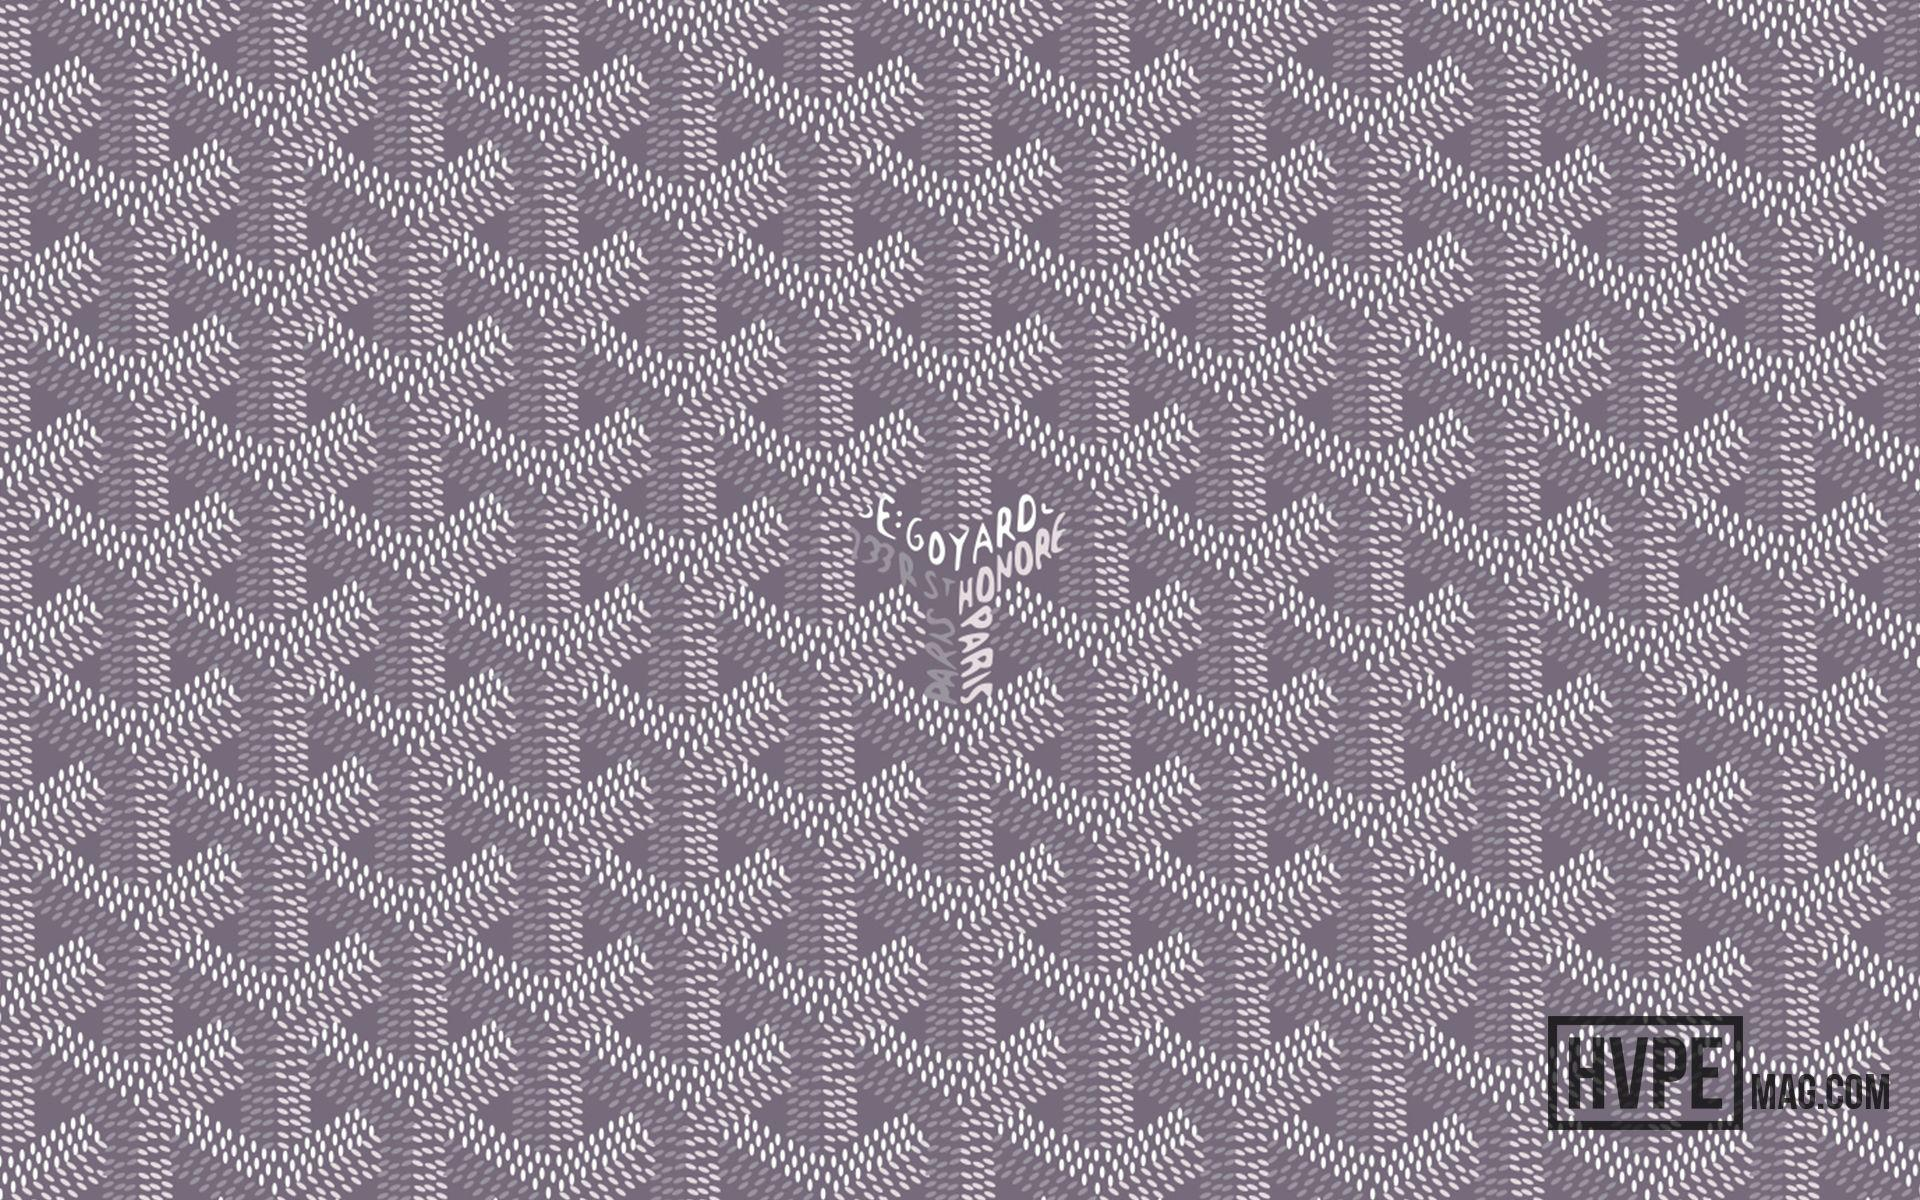 1920x1200 Goyard Wallpapers